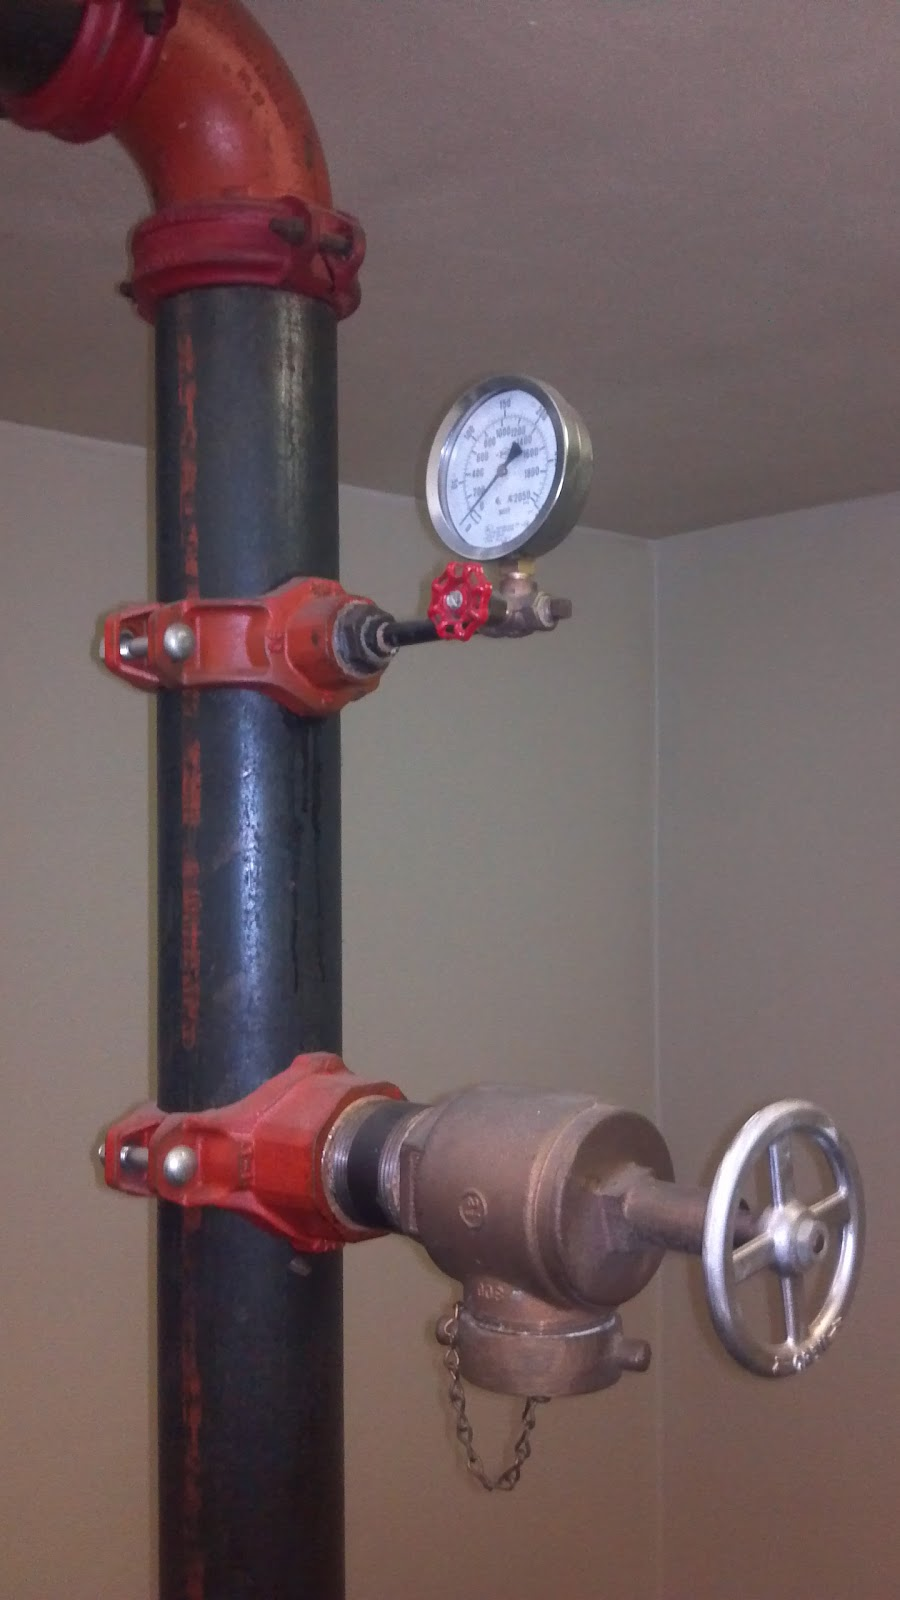 Nick S Fire Electrical Safety Amp Security Blog The